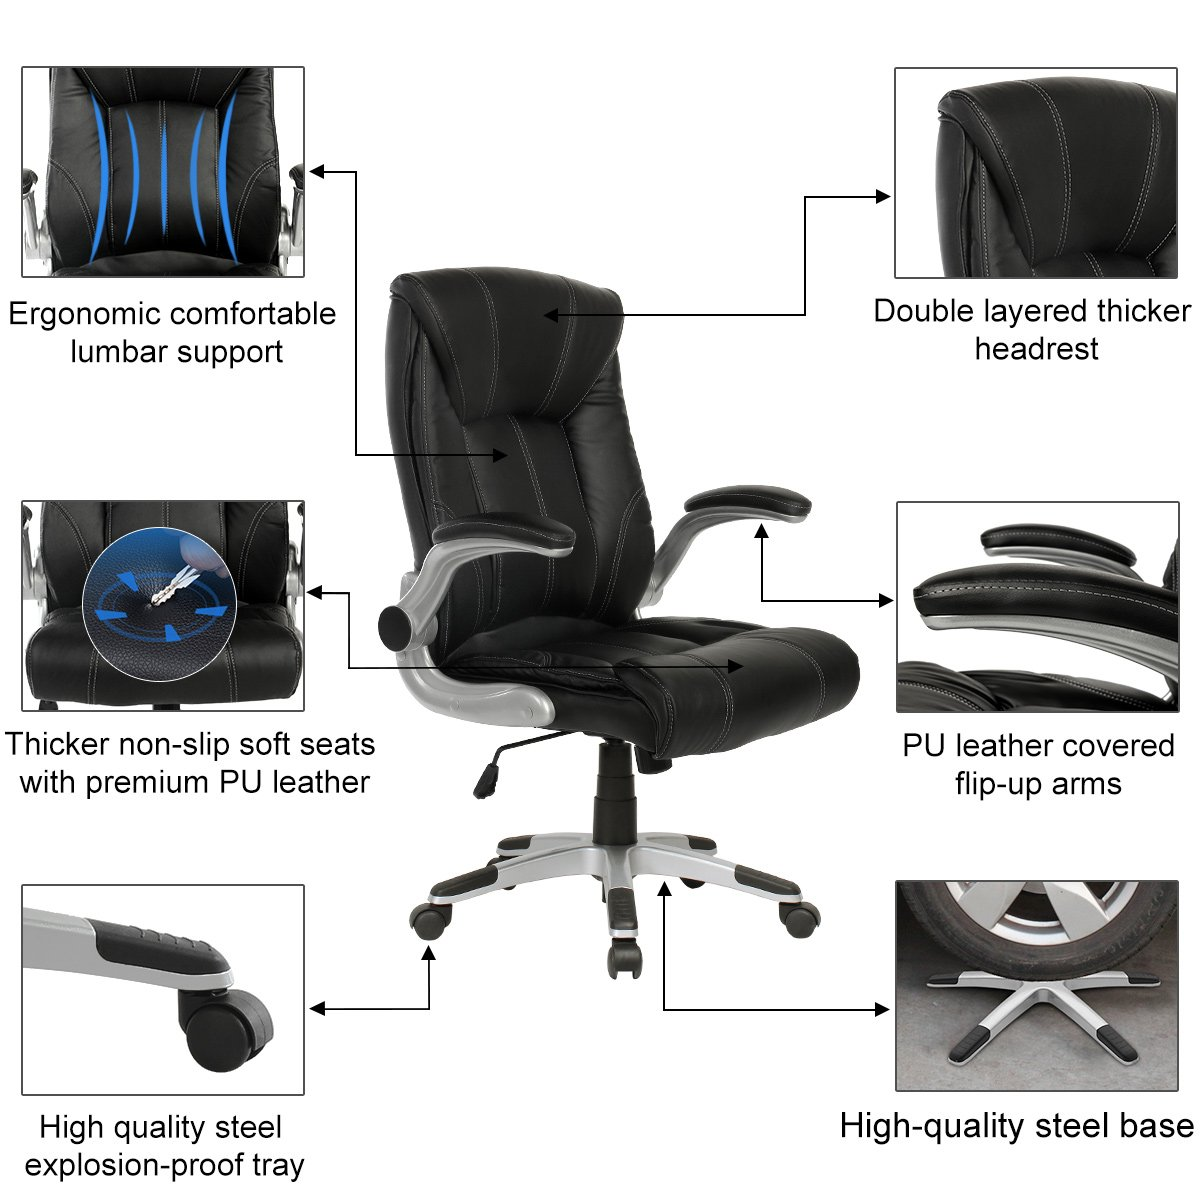 YAMASORO Ergonomic High-Back Executive Office Chair PU Leather Computer Desk Chair with Flip-up Arms and Back Support by YAMASORO (Image #6)